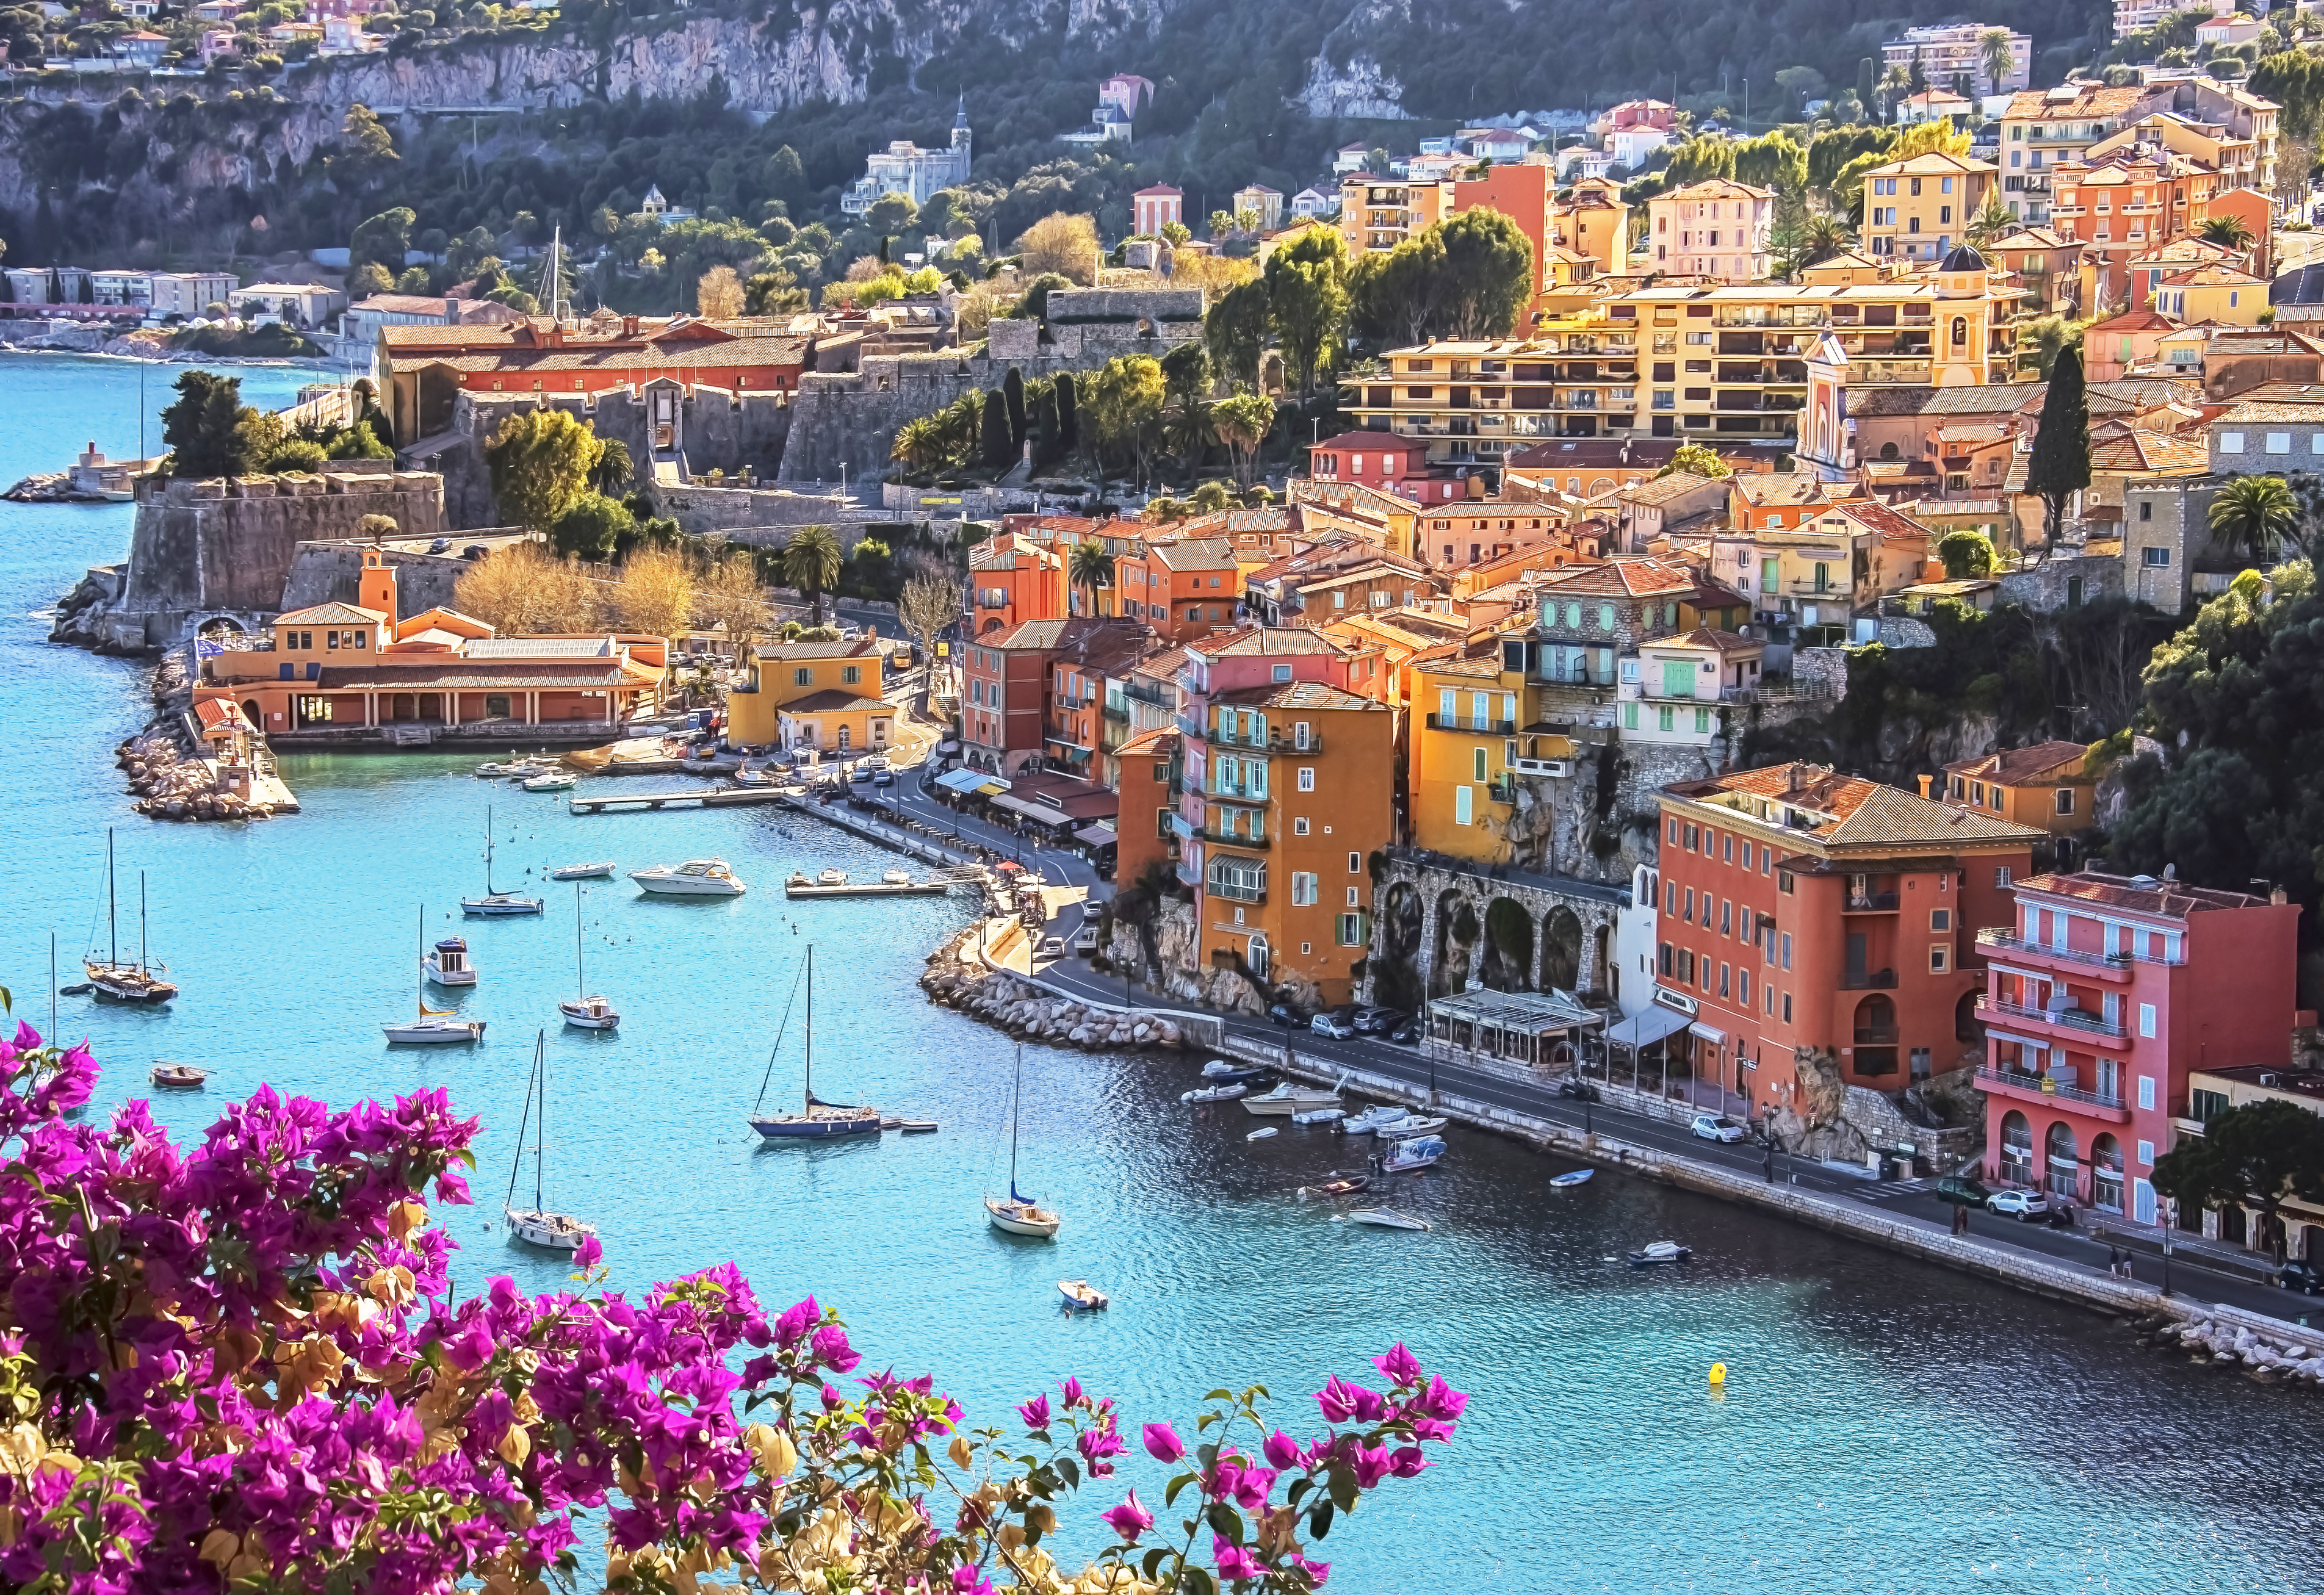 Colourful Village Villefranche Sur Mer in the French Riviera